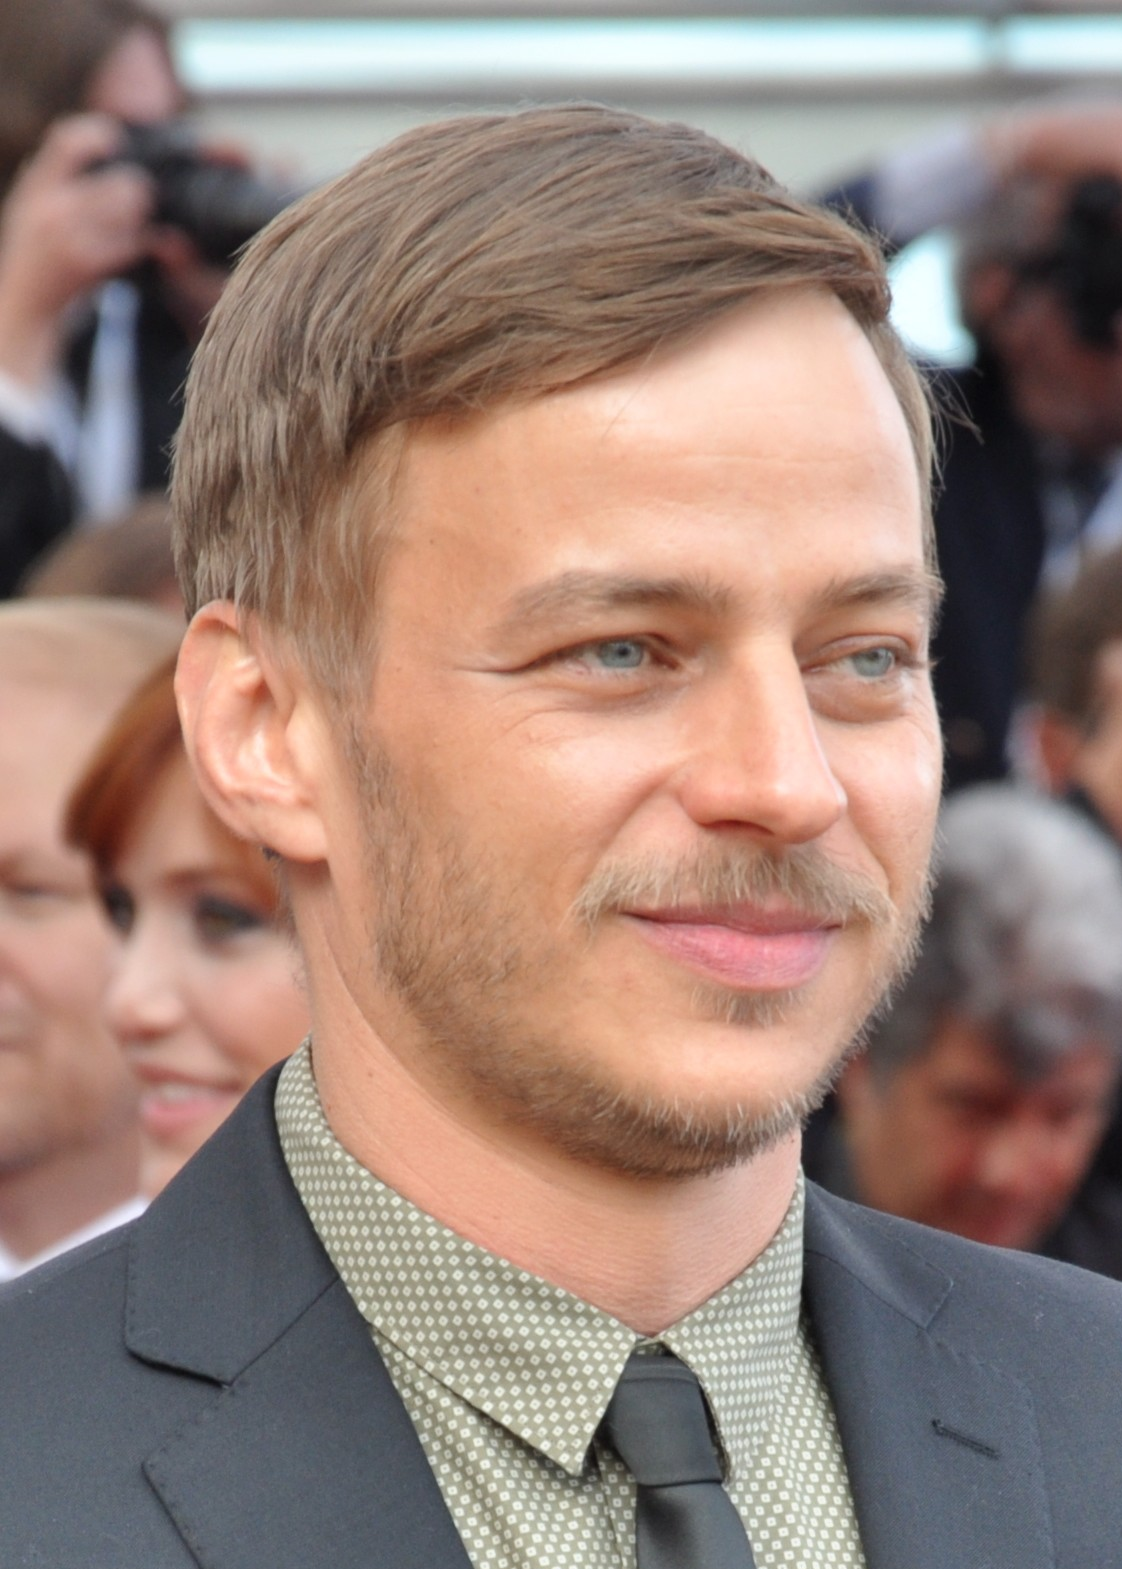 The 45-year old son of father (?) and mother(?) Tom Wlaschiha in 2018 photo. Tom Wlaschiha earned a  million dollar salary - leaving the net worth at 1 million in 2018